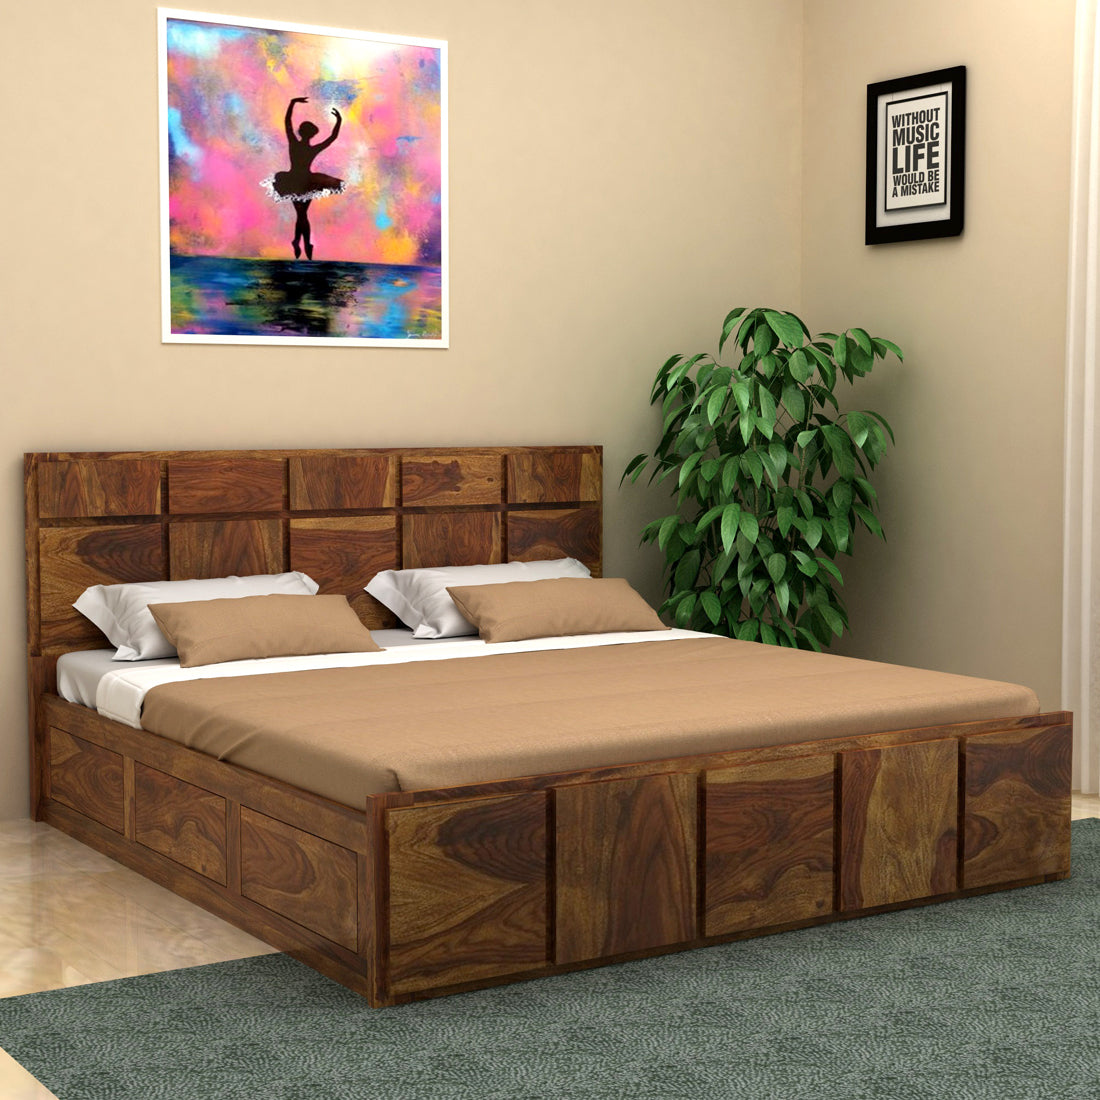 Amrilo Sheesham Wood King Size Bed In Box Storage Vintage Home